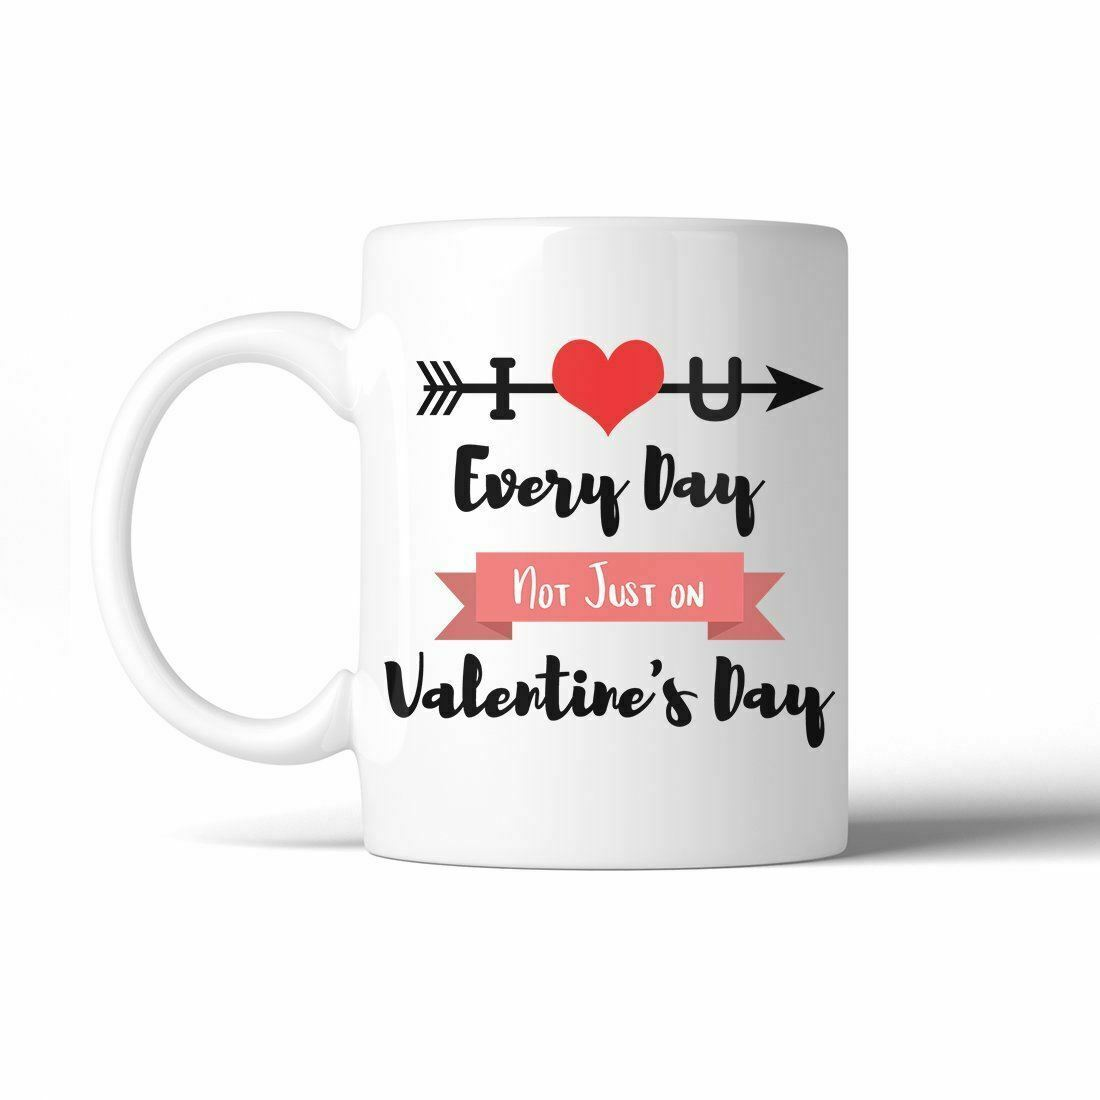 I Love U Every Day 11 Oz Ceramic Coffee Mug Valentine's Day Gift